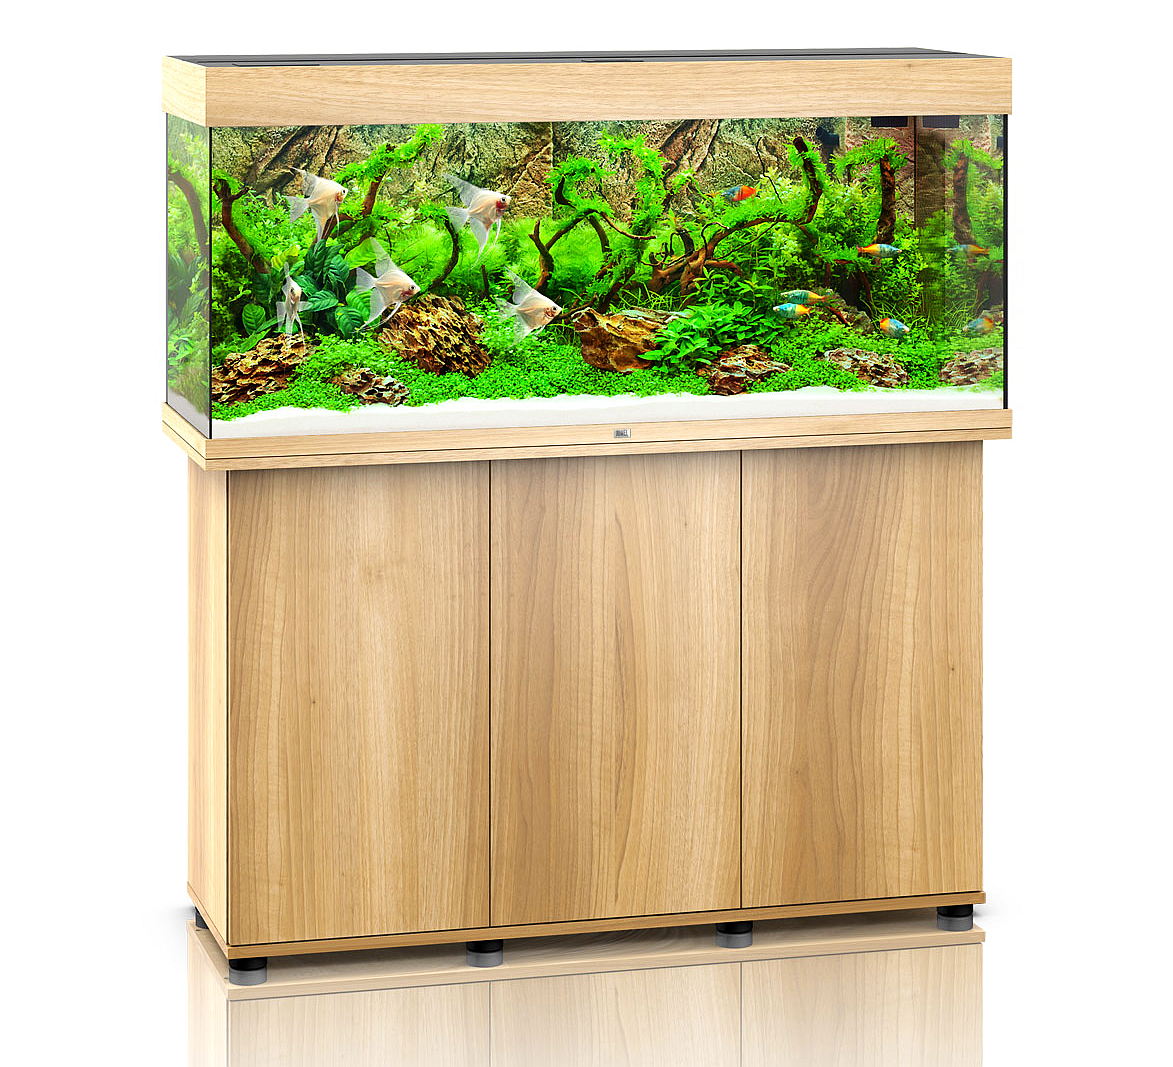 juwel aquarium unterschrank sbx rio 240 helles holz. Black Bedroom Furniture Sets. Home Design Ideas